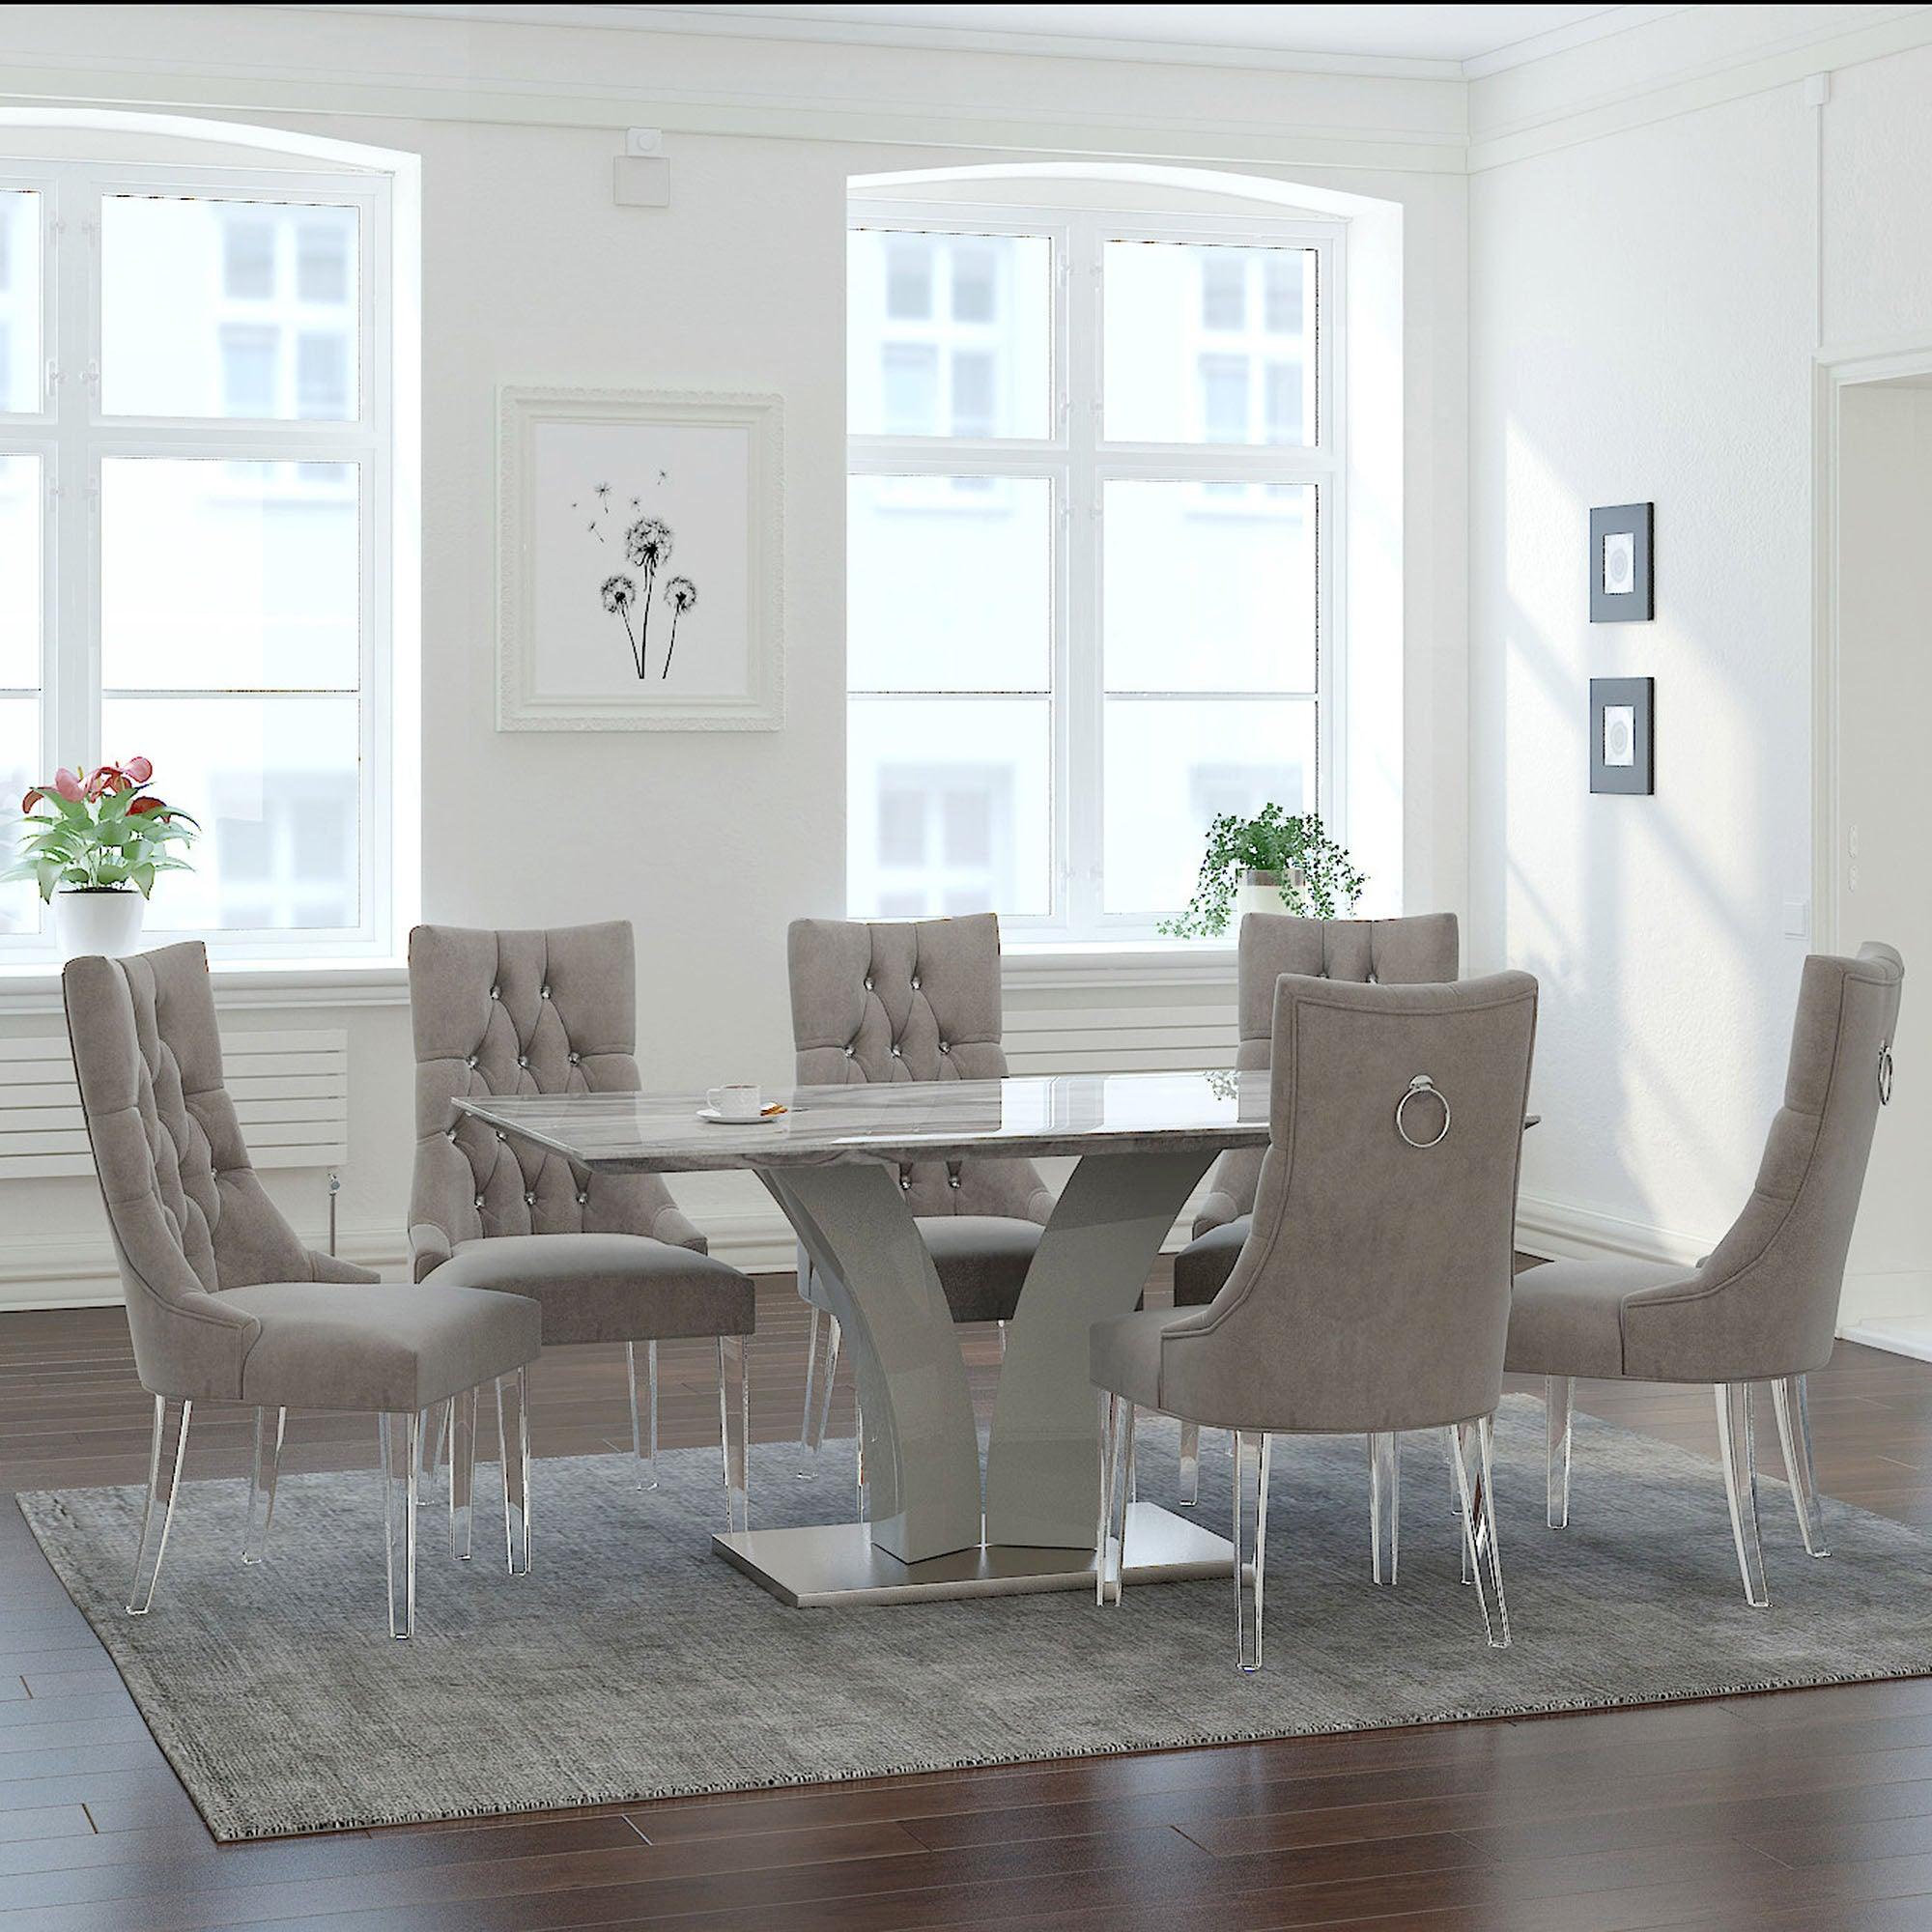 Napoli/Cavalli 7pc Dining Set, Grey/Grey